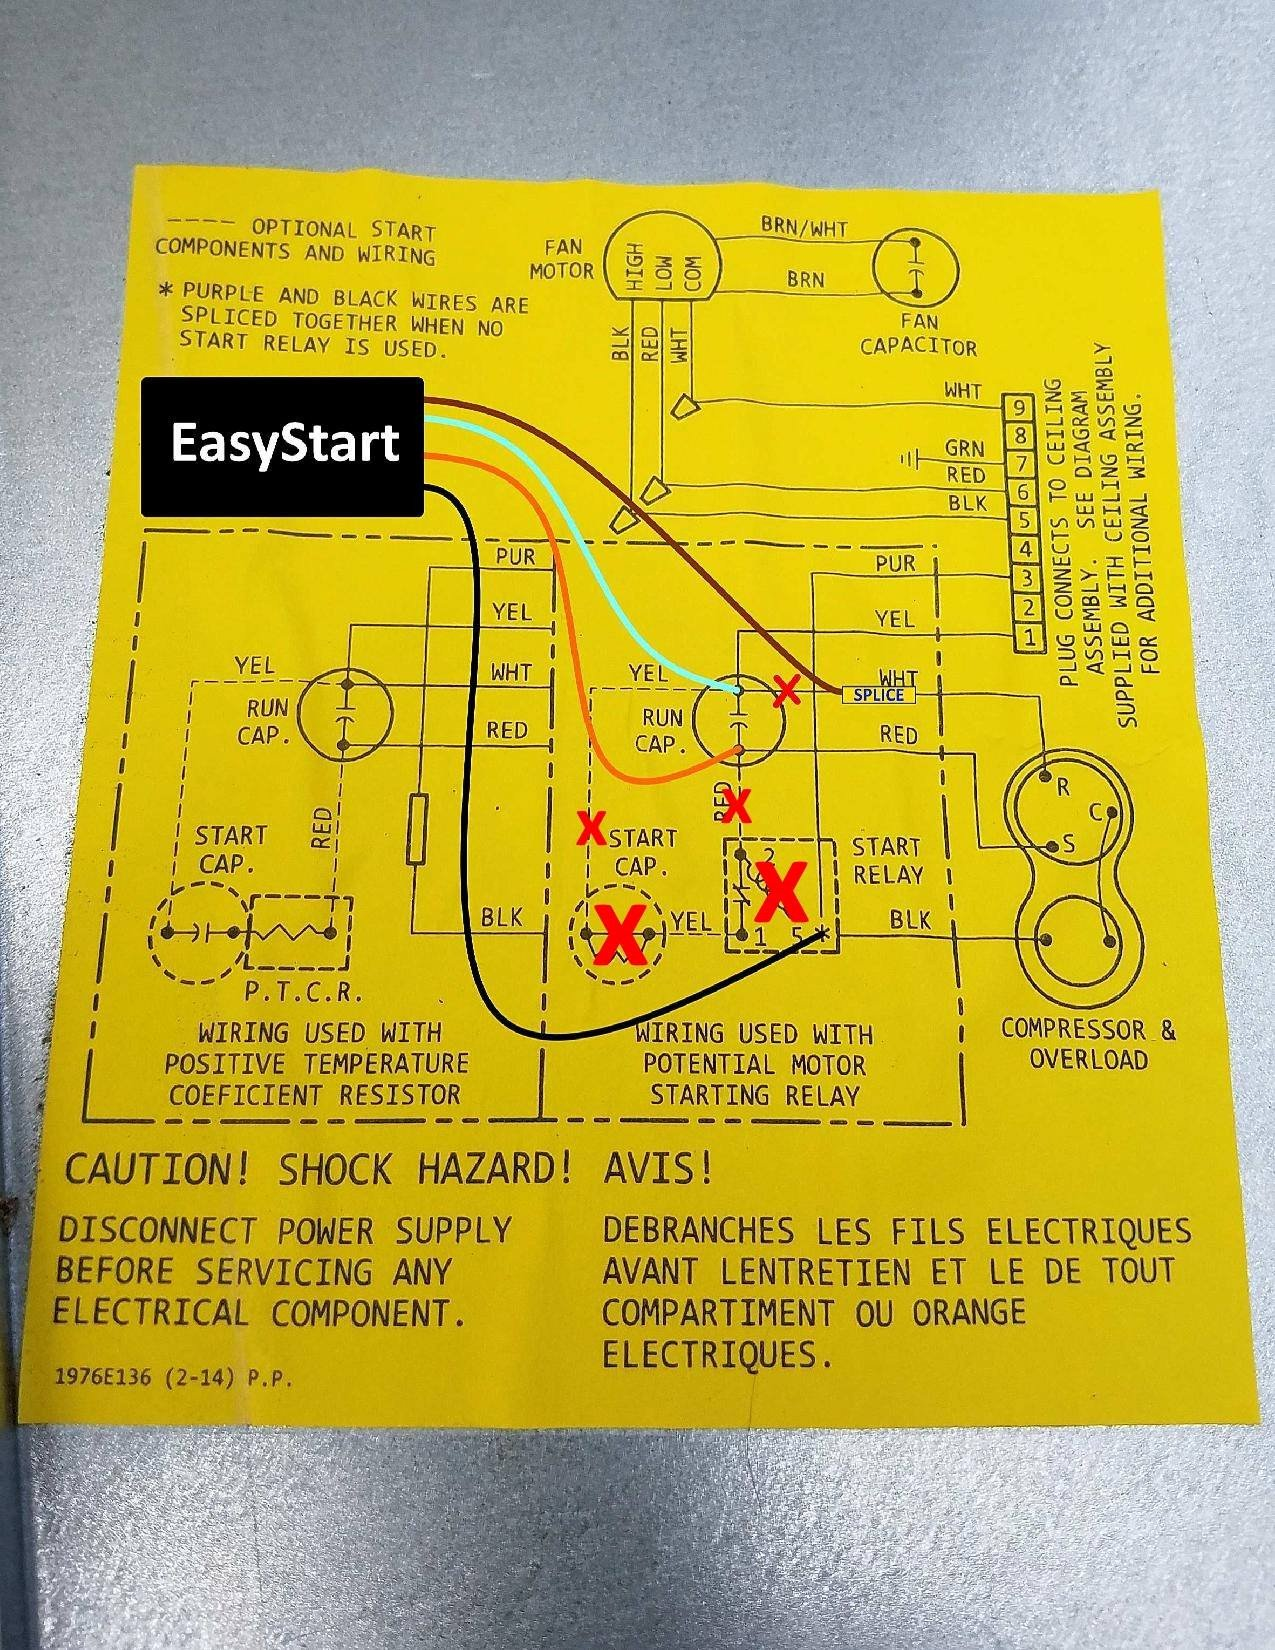 hight resolution of rv easystart soft starter wiring diagrams resource page micro aircoleman mach 1 easystart 364 wiring